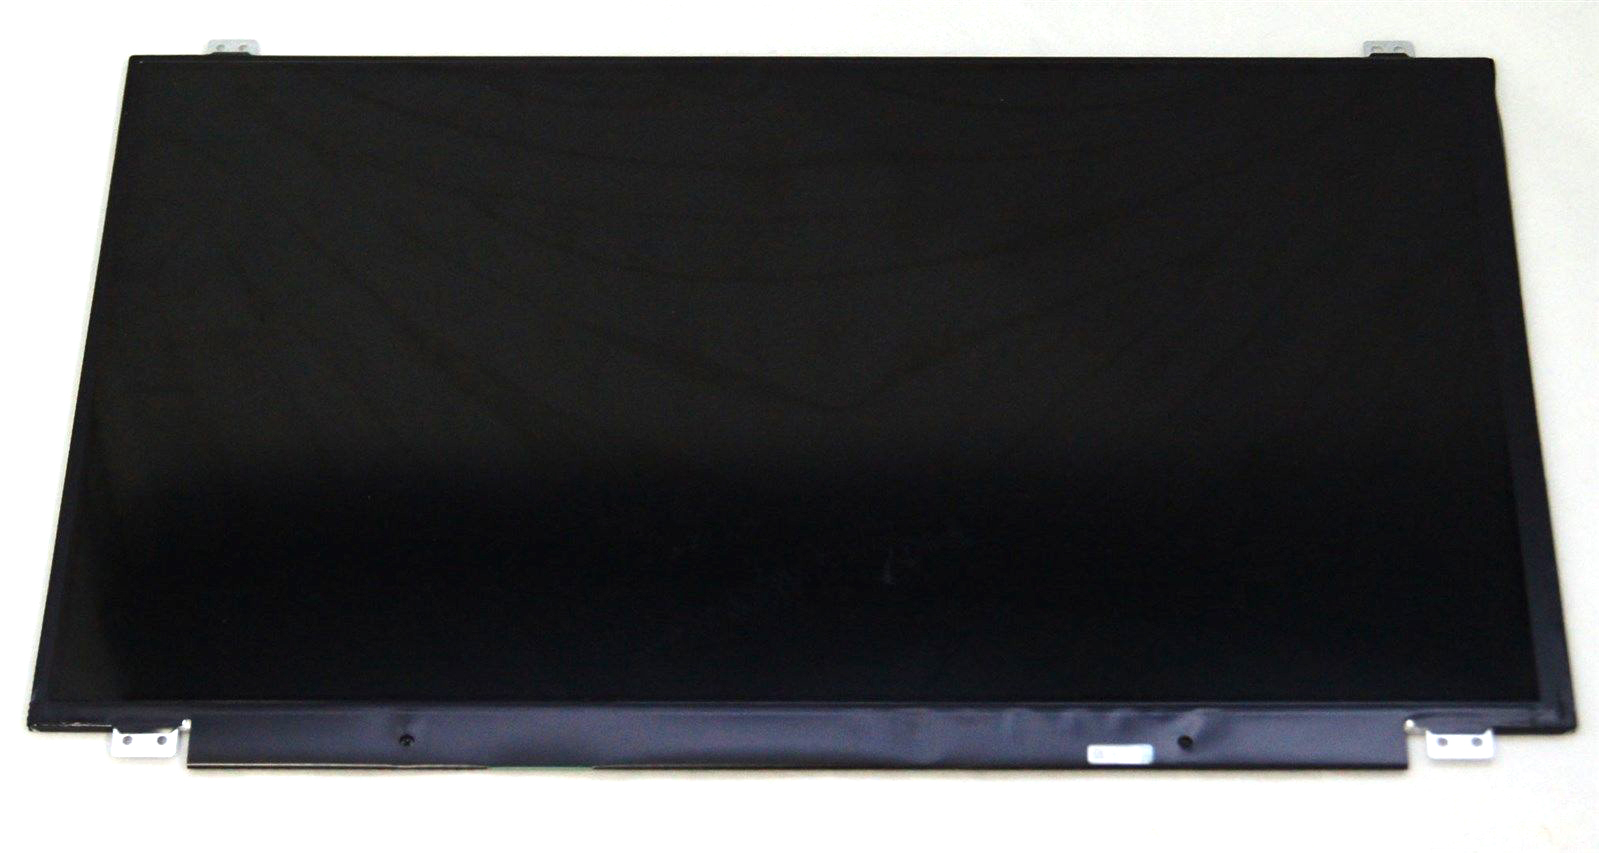 QuYing Laptop LCD Screen for Acer ASPIRE V5-571P V5-552PG E5-531 ES1-512 E5-572G E5-573 E5-573G SERIES (15.6 1366x768 30pin) переходник tp link ue330 10 100 1000 10000mbps usb 3 0